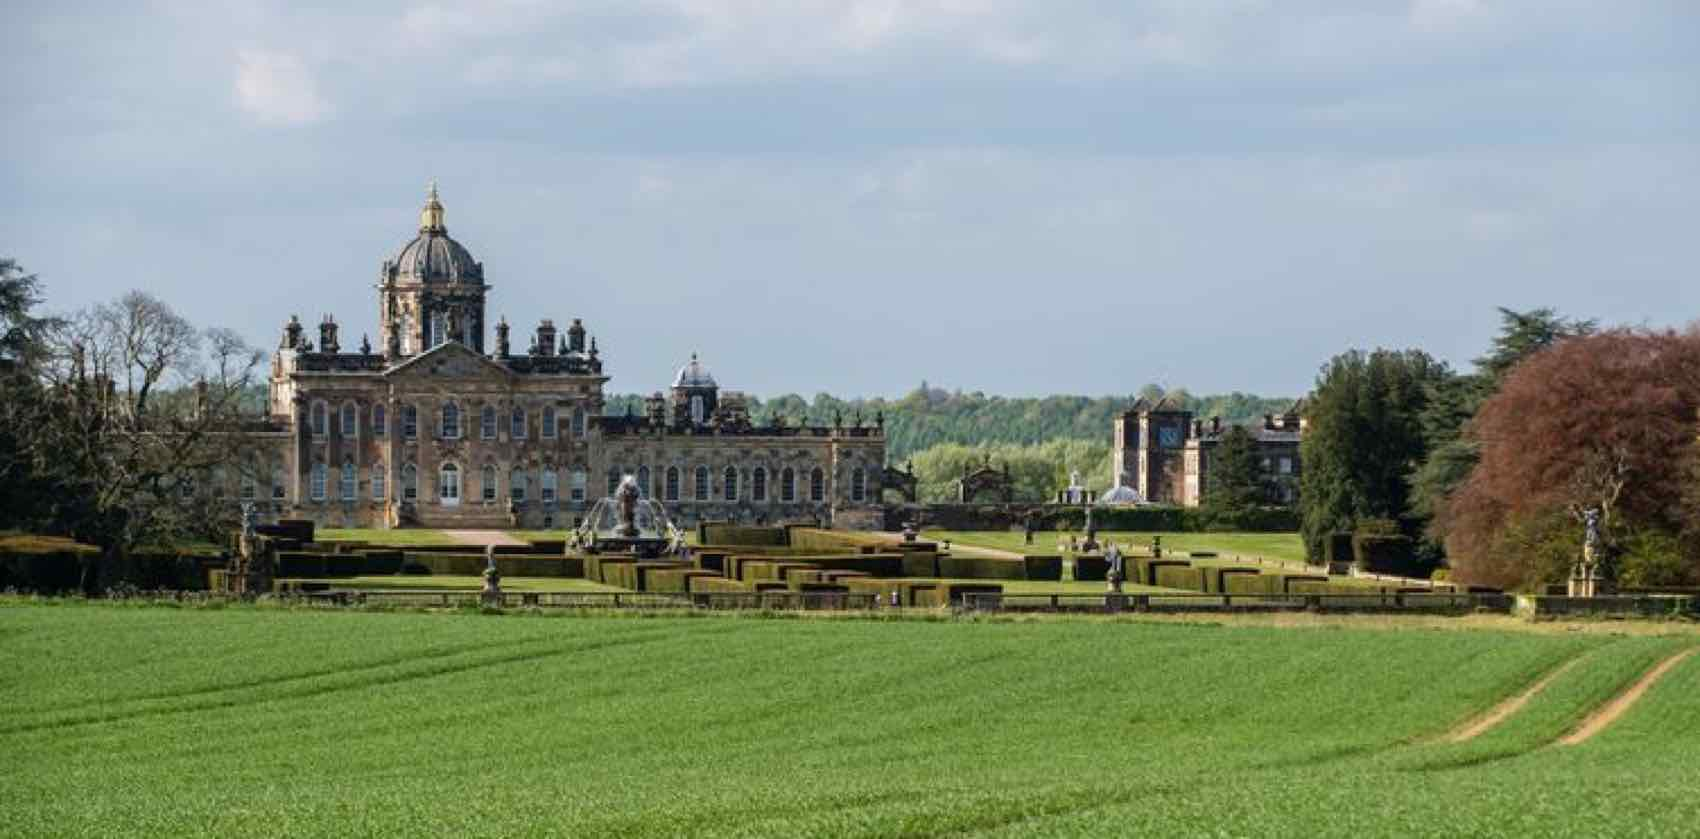 View from Gately Road, Castle Howard, York, England